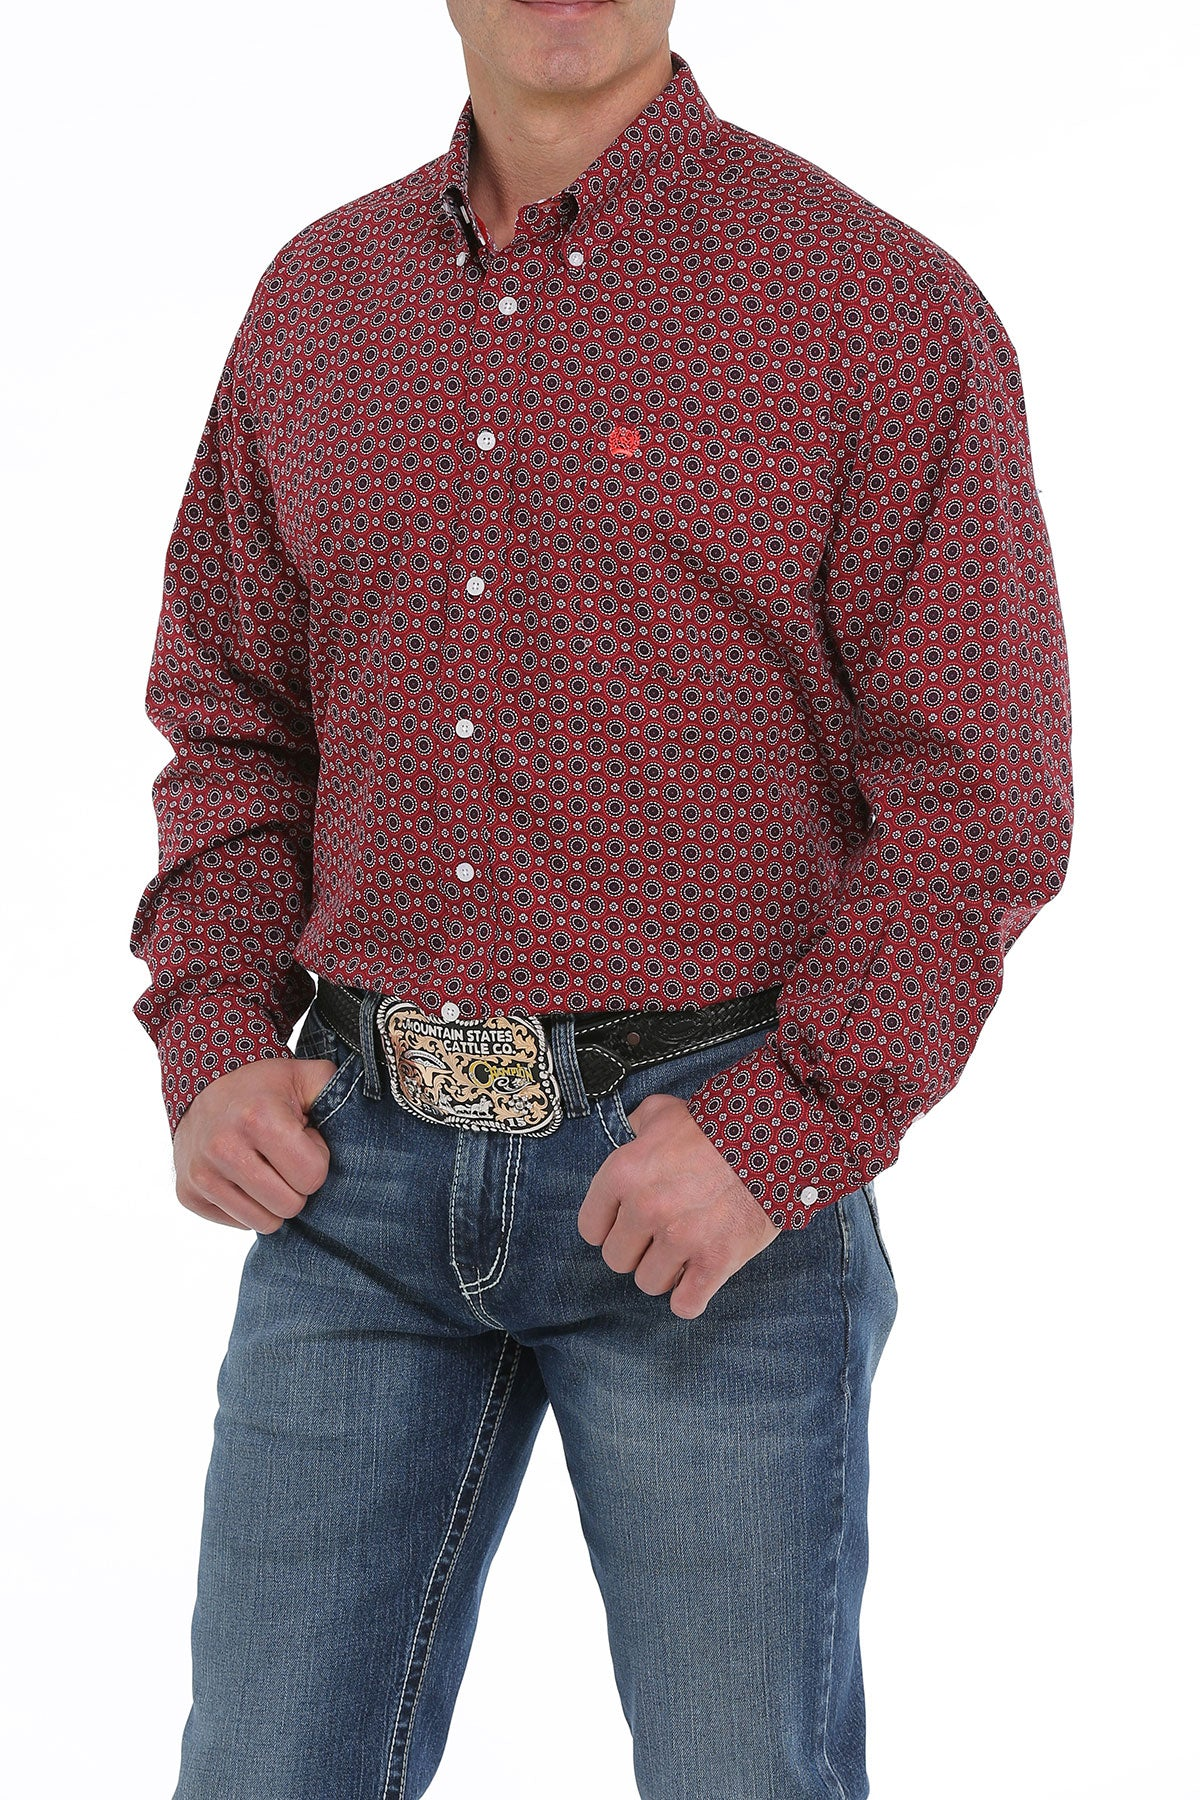 'Cinch' MTW1104918 - L/S Geo Print Button Down - Burgundy